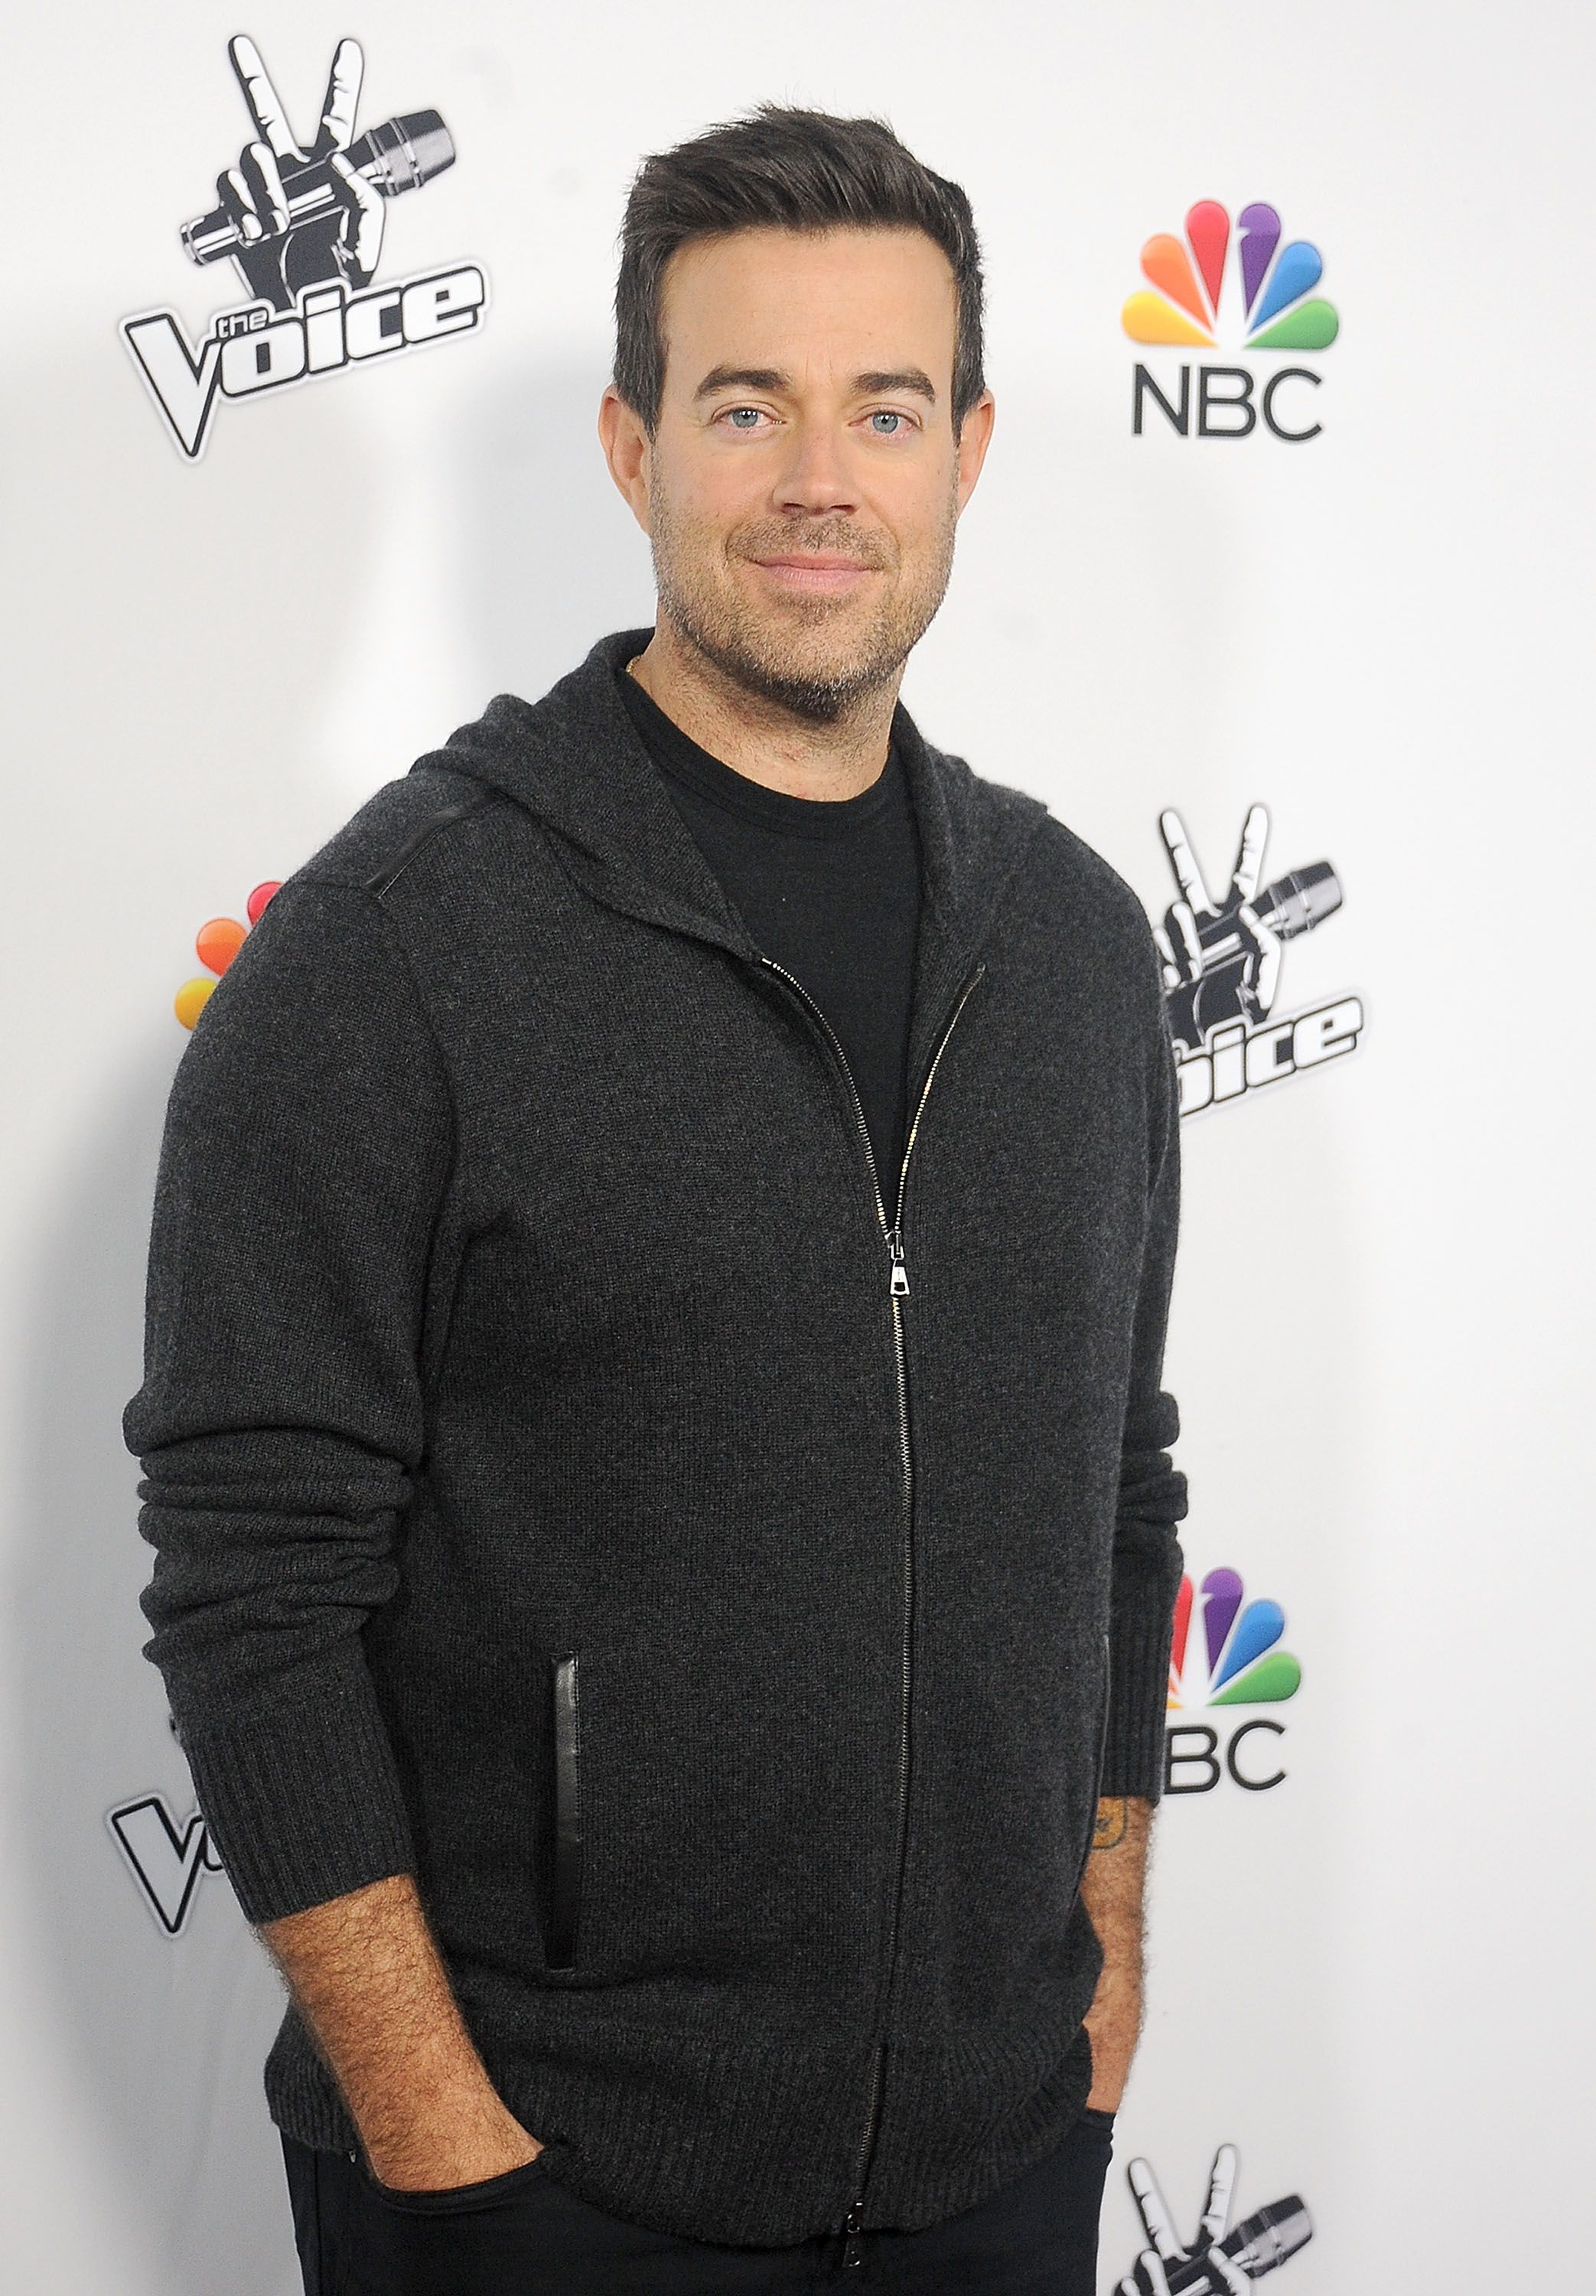 NBC's 'The Voice' Season 7 Red Carpet Event